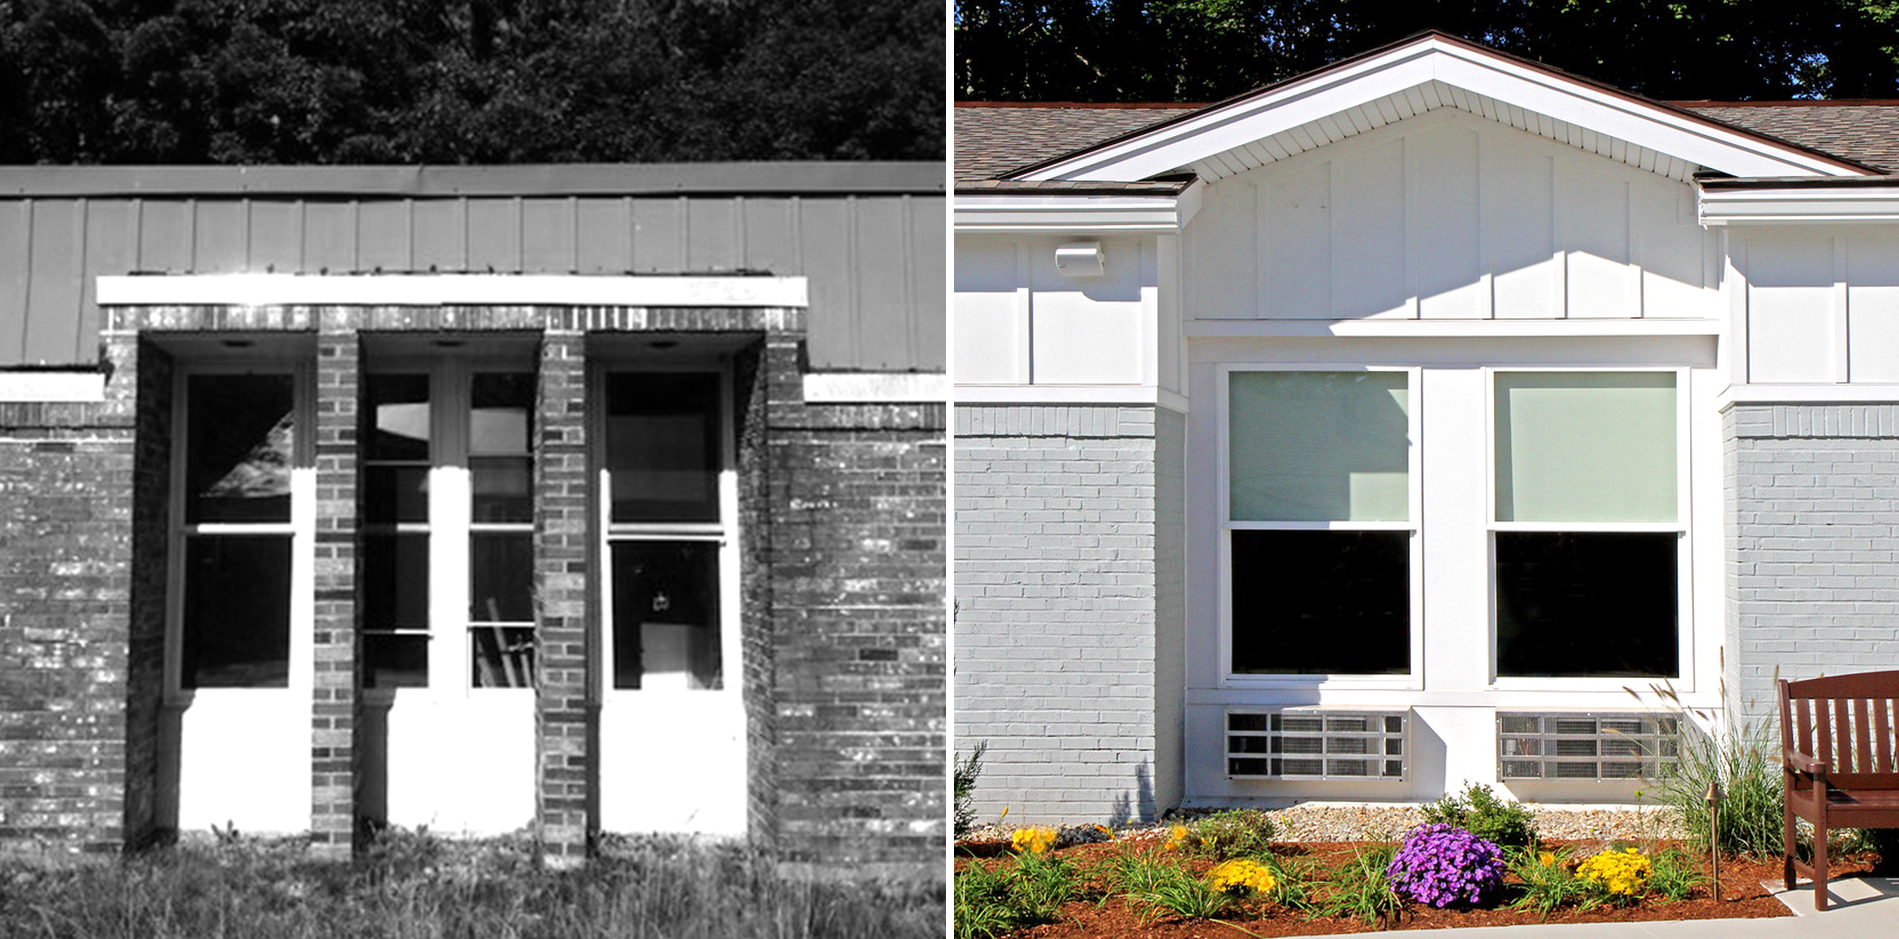 New windows, facade and roofing complete the exterior improvements.